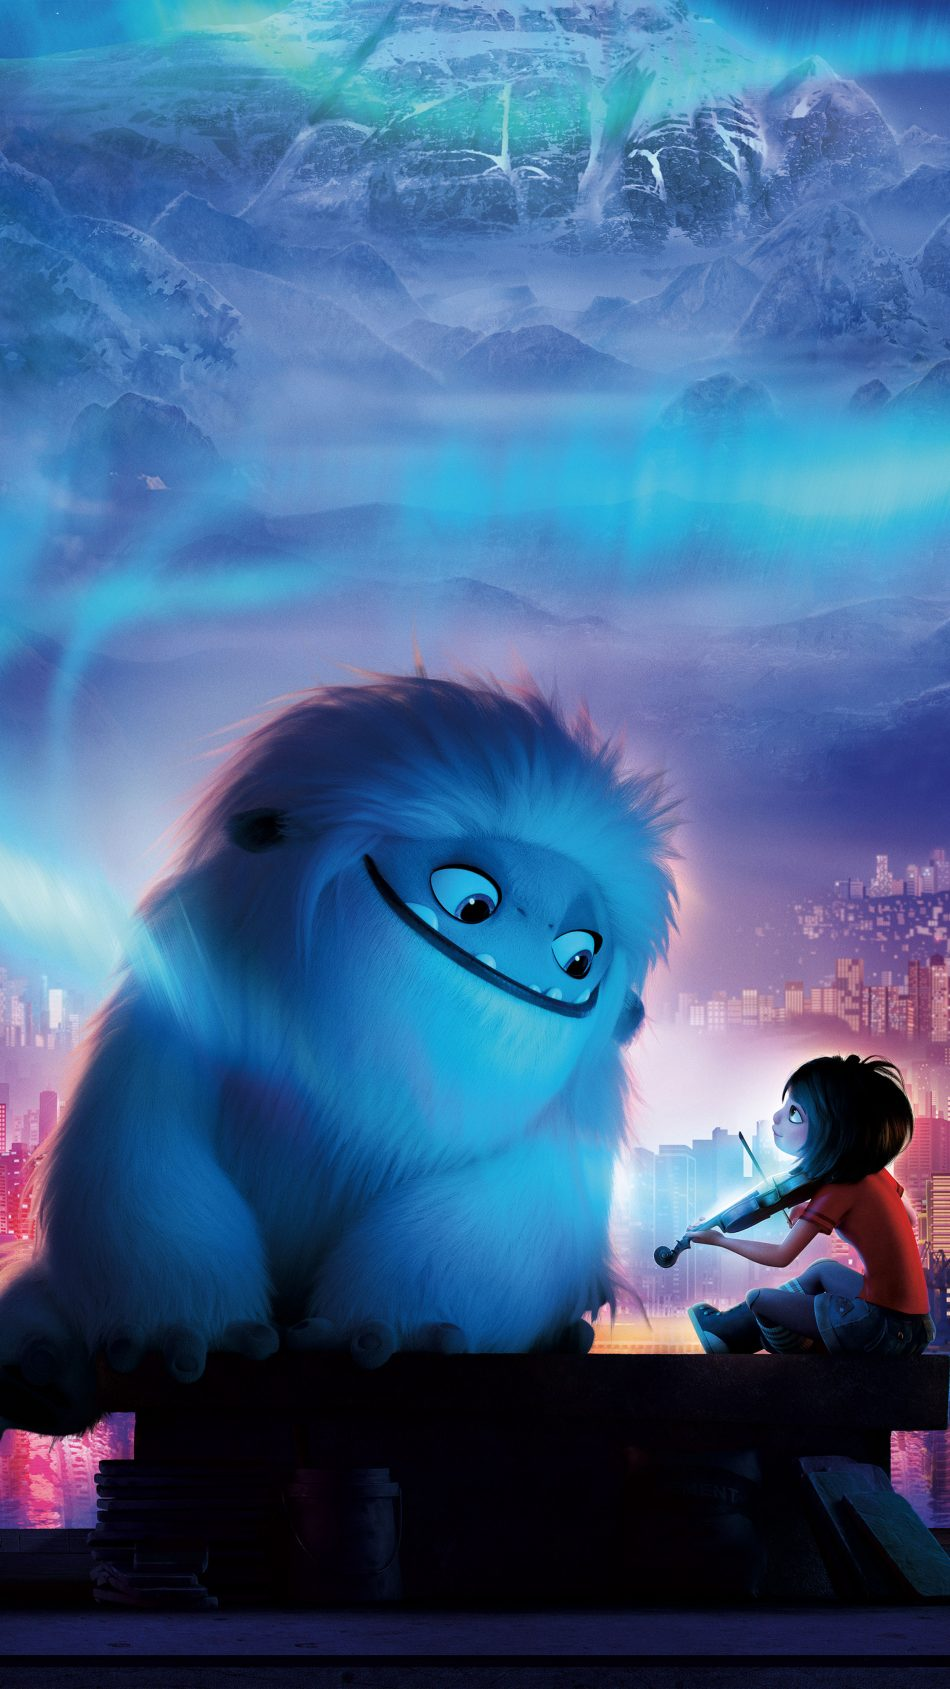 Abominable Animation 2019 Adventure Free 4K Ultra HD ...